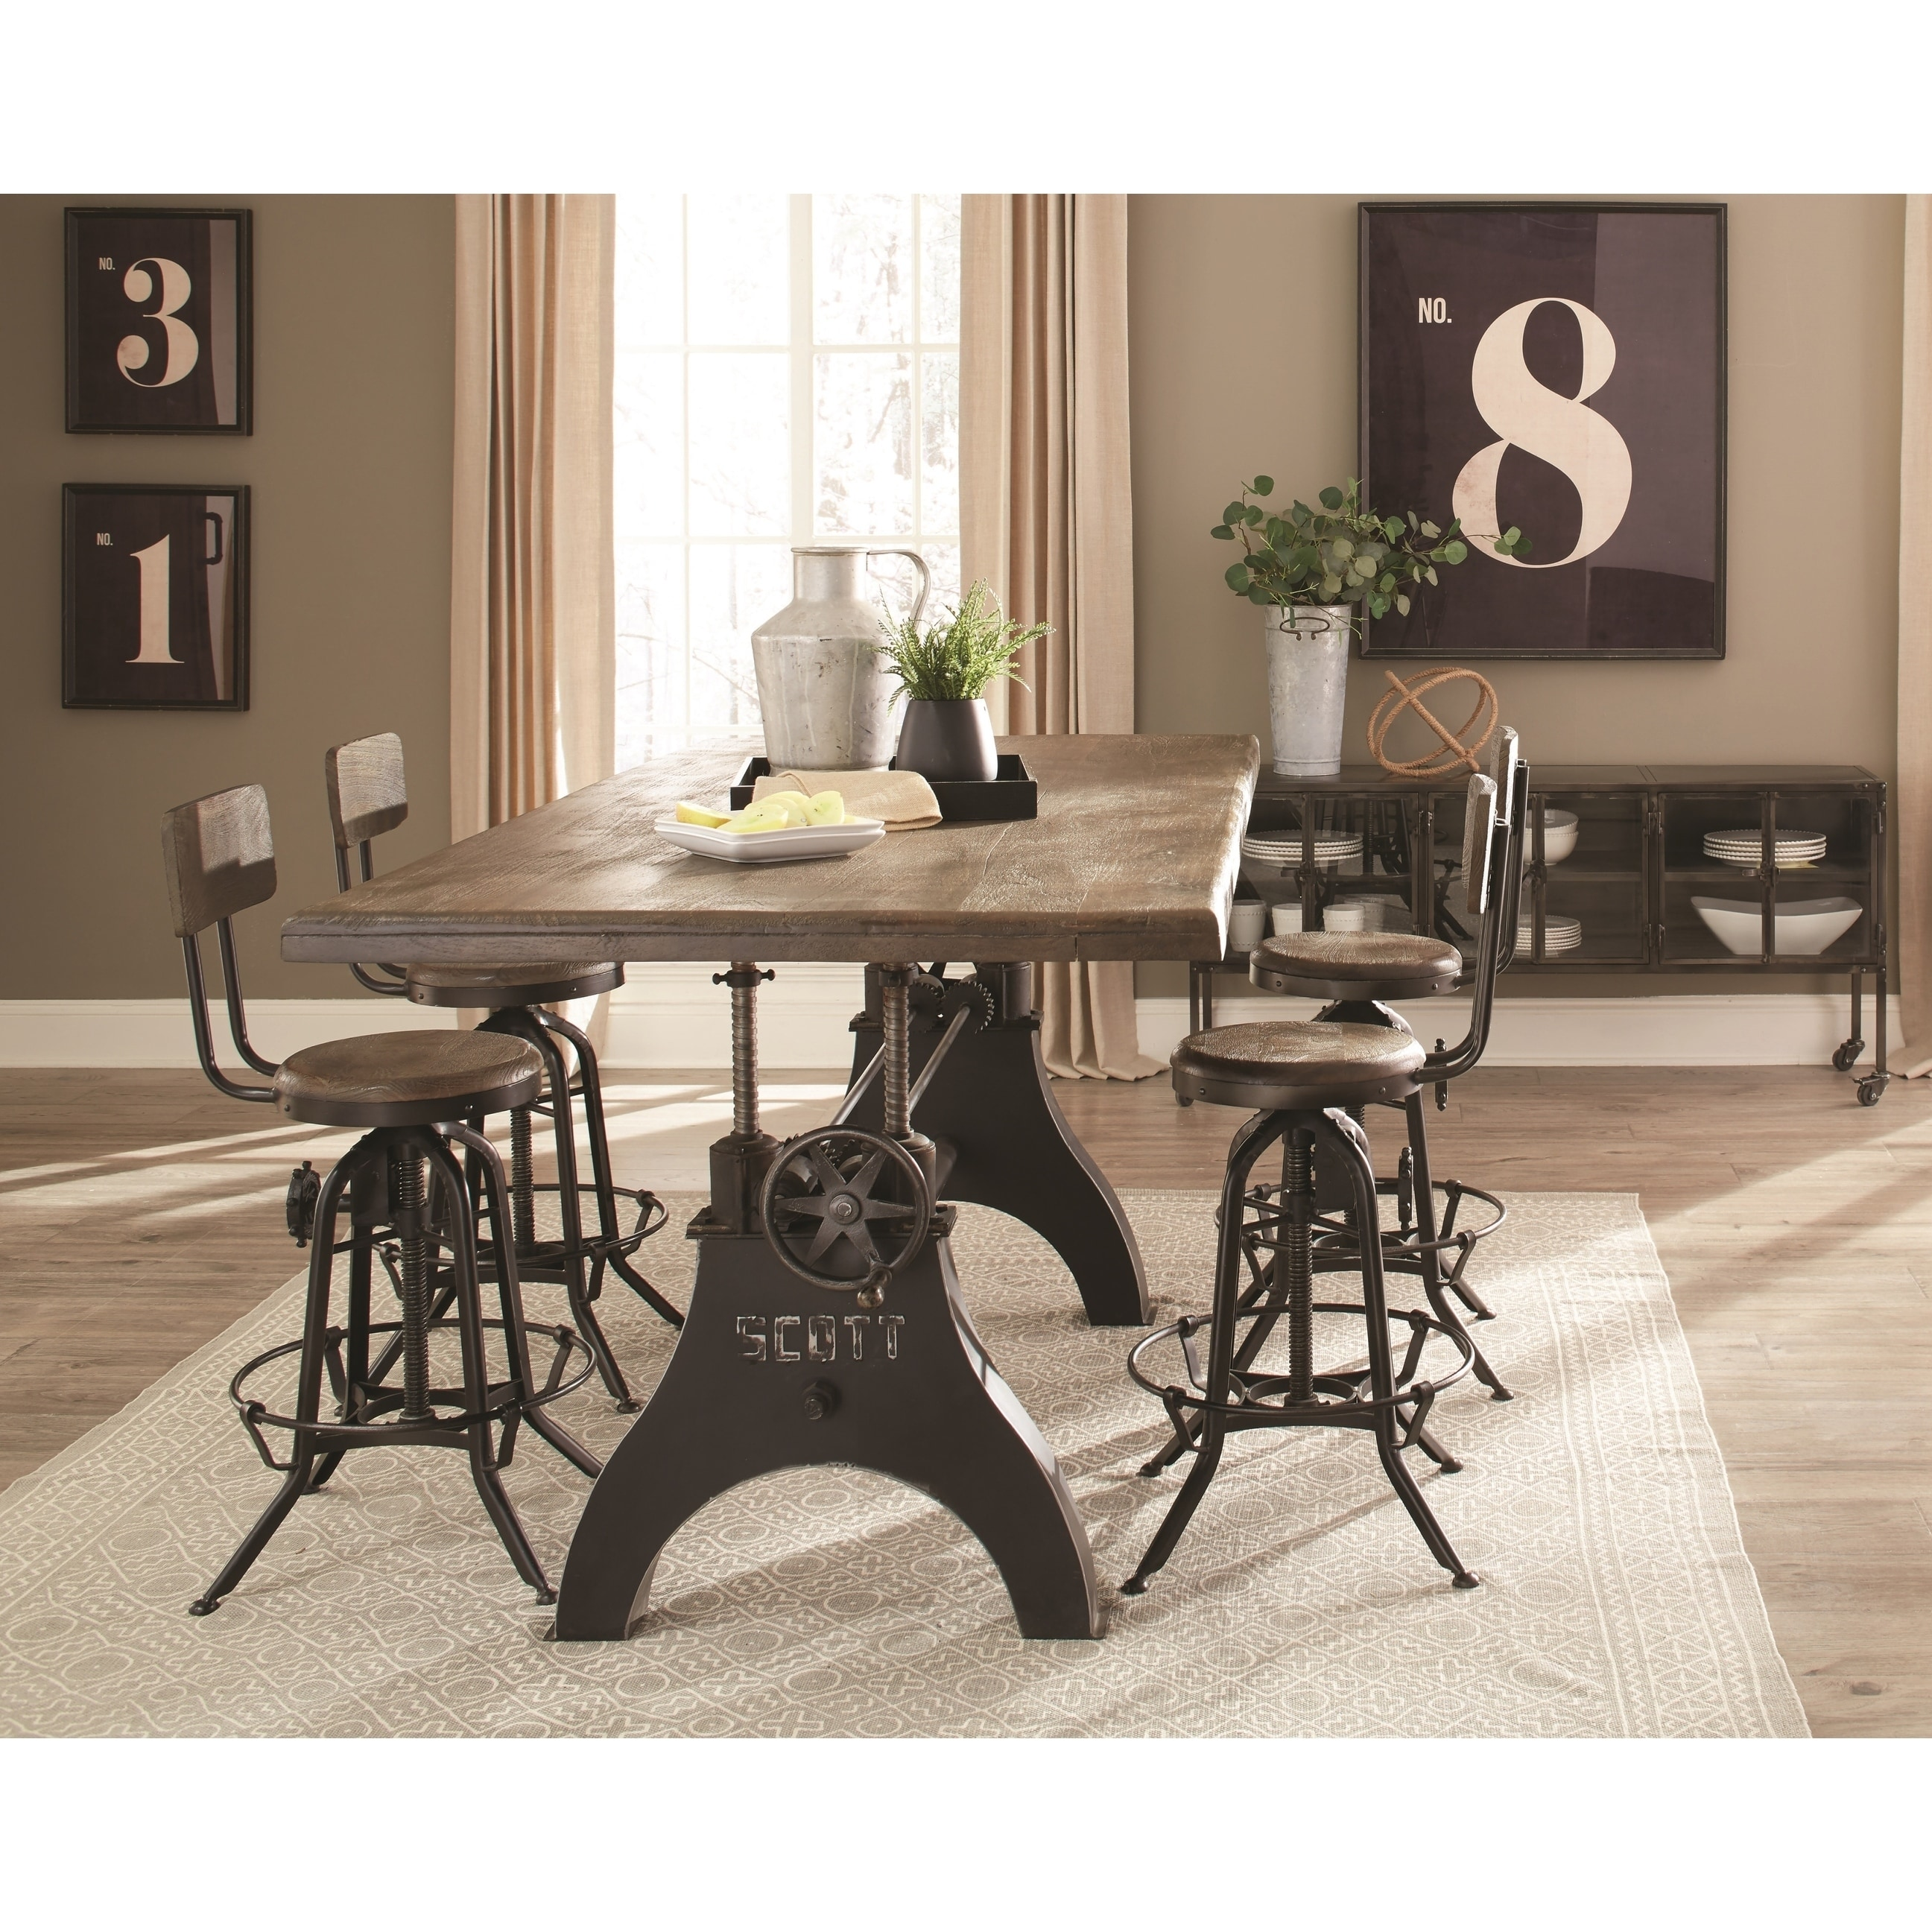 Cast Iron Vintage Milling Machine Design Counter Height Dining Set With Metal Buffet Server